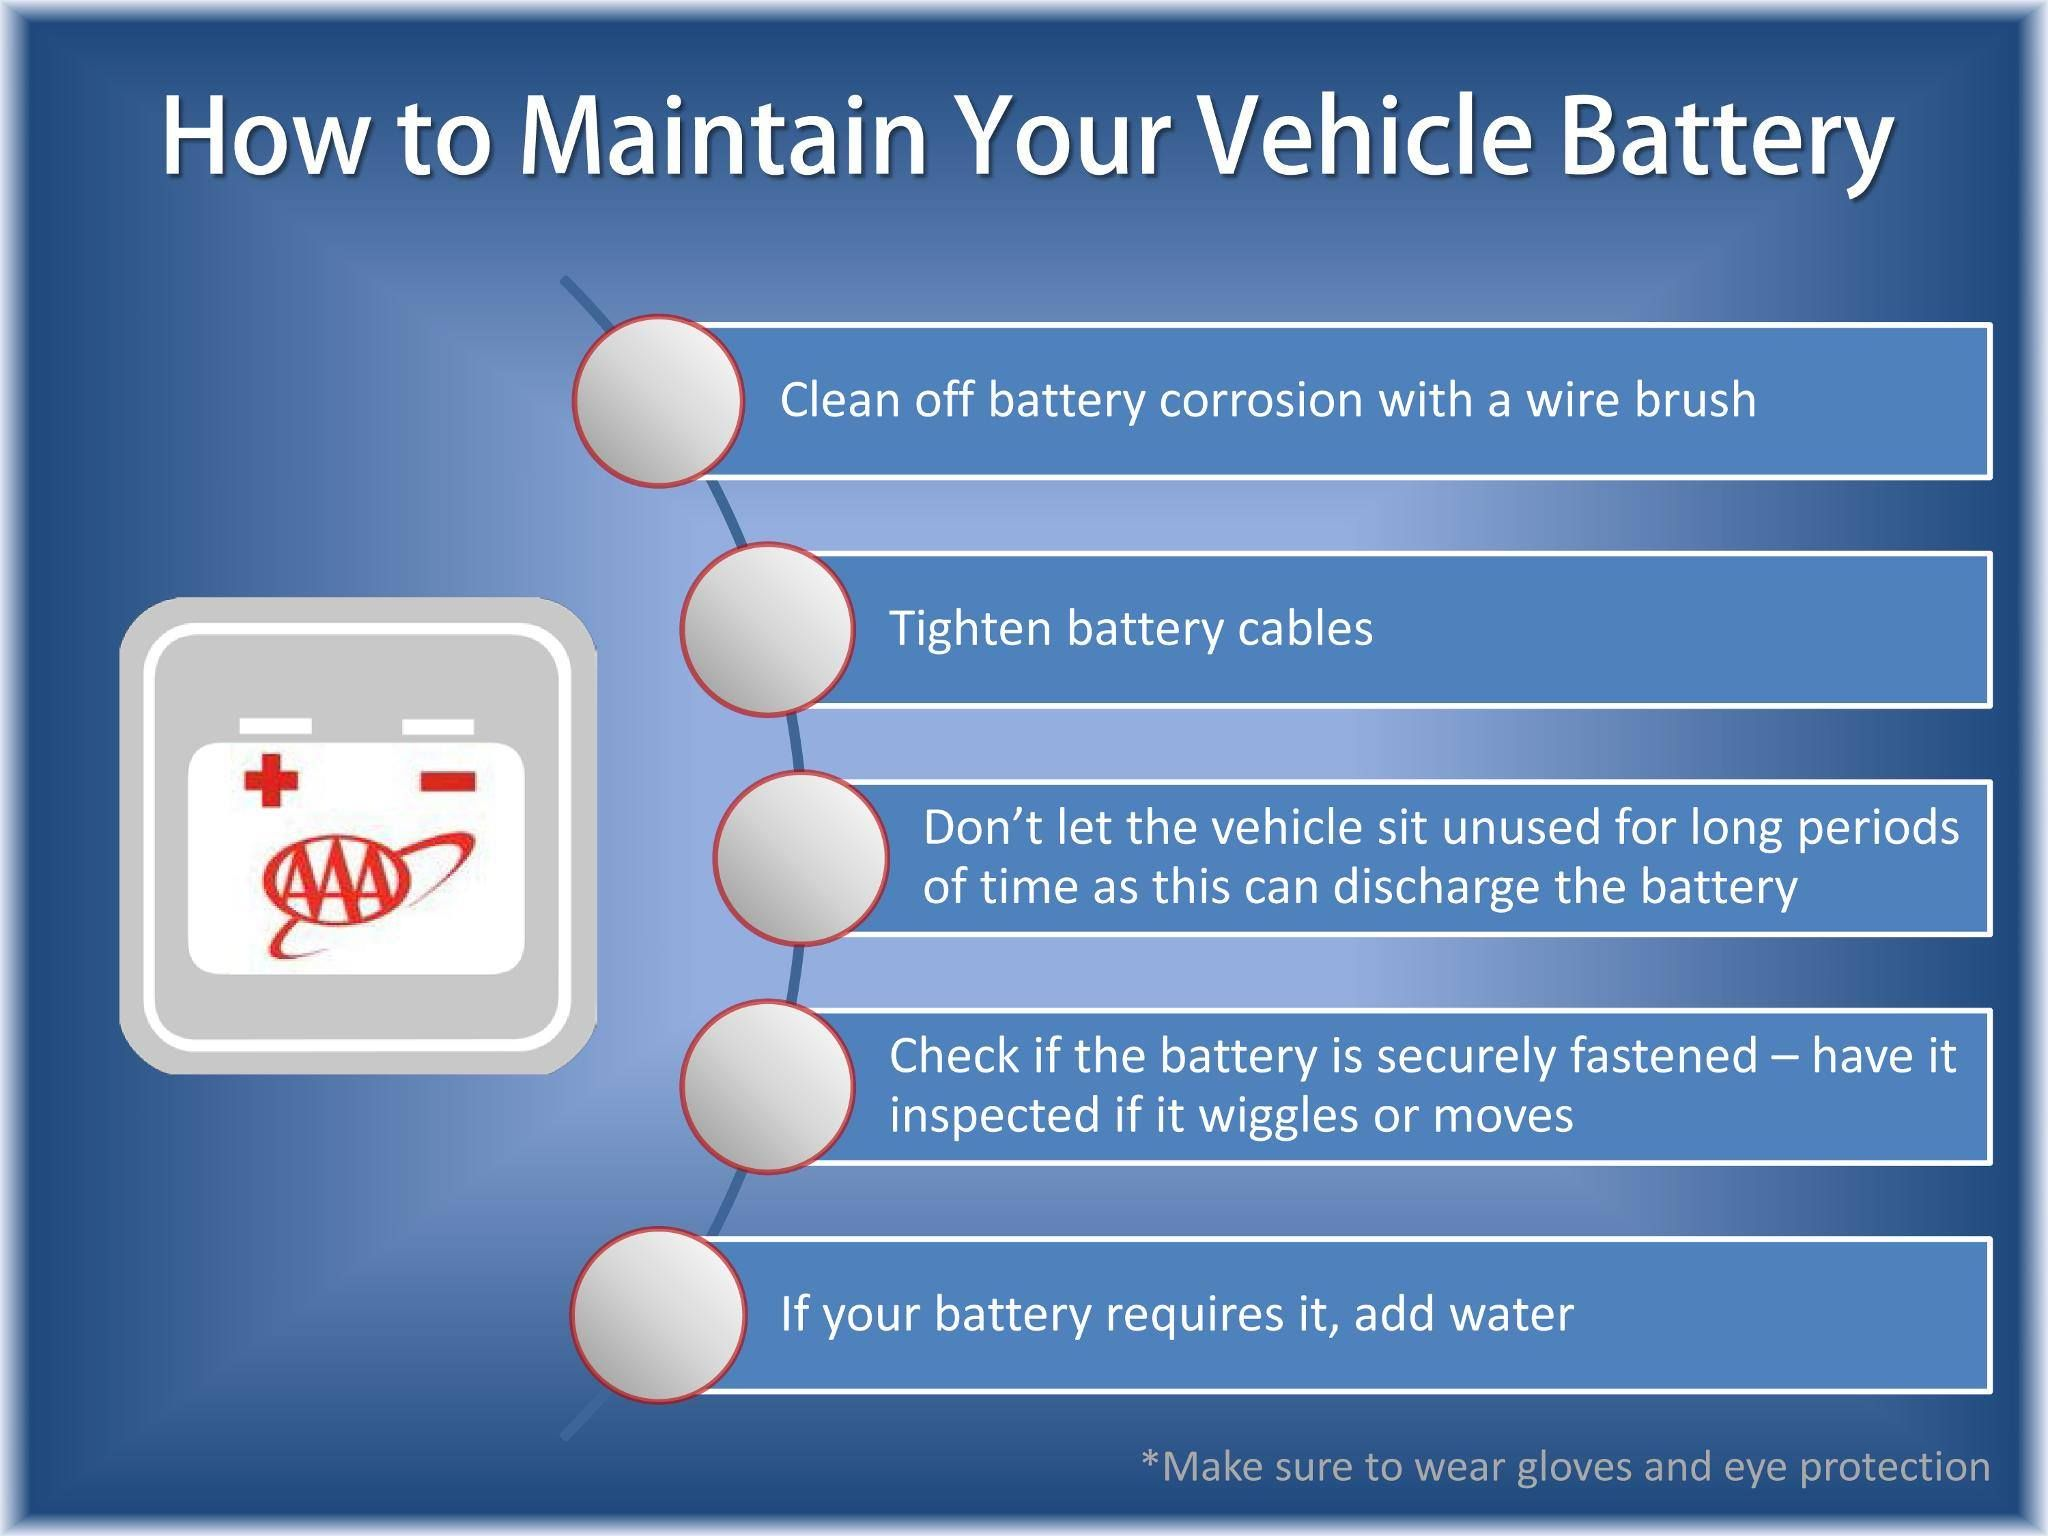 Aaa Aaa Battery Instant Quote Car Care How To Memorize Things Car Maintenance